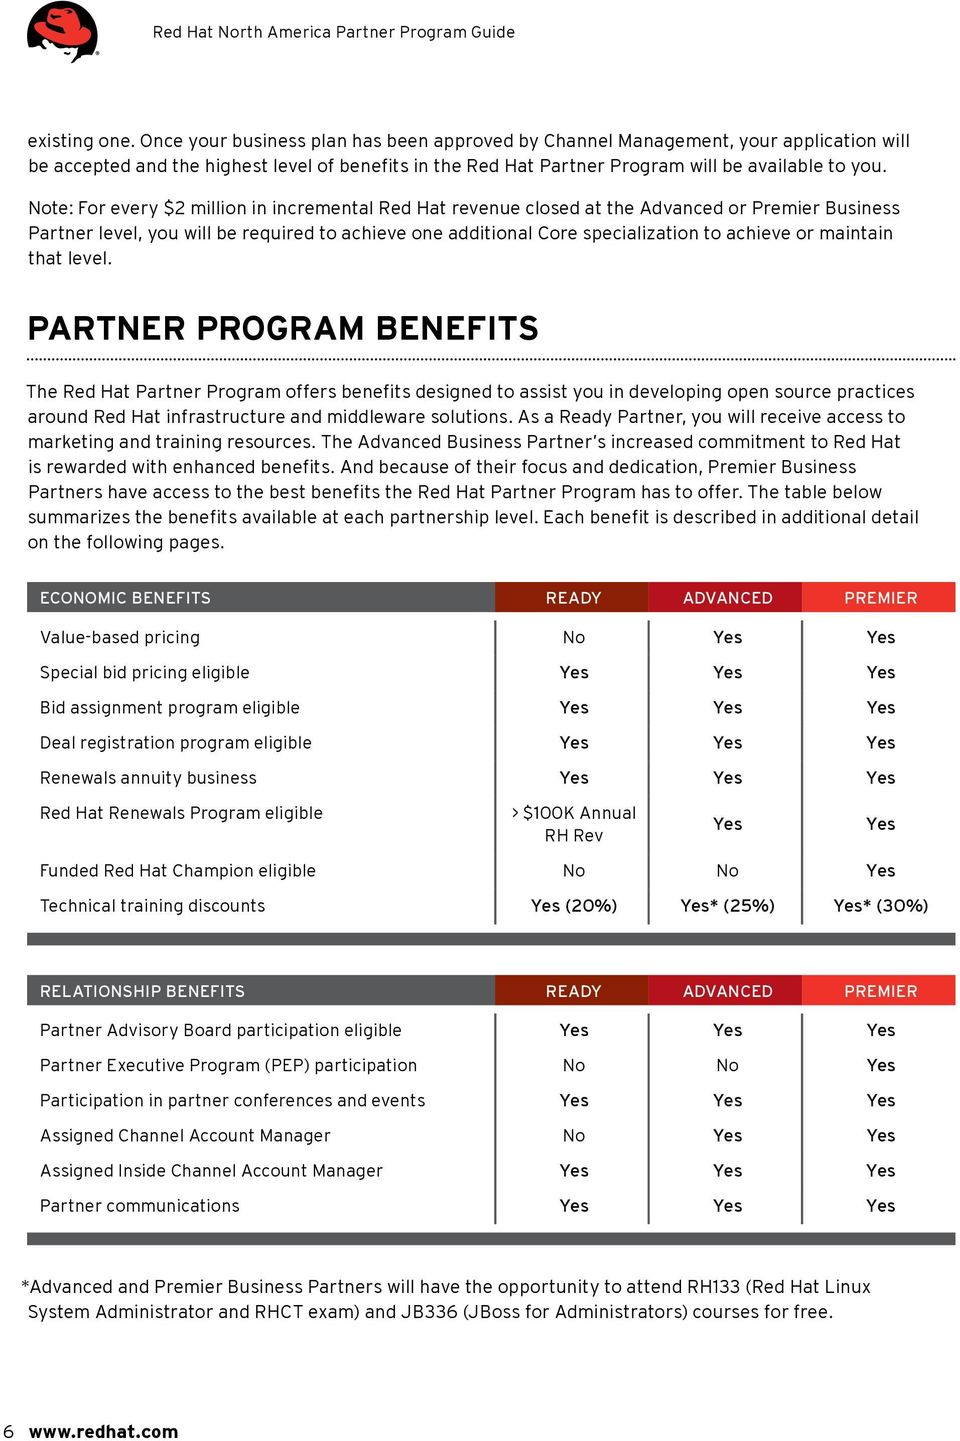 Note: For every $2 million in incremental Red Hat revenue closed at the Advanced or Premier Business Partner level, you will be required to achieve one additional Core specialization to achieve or